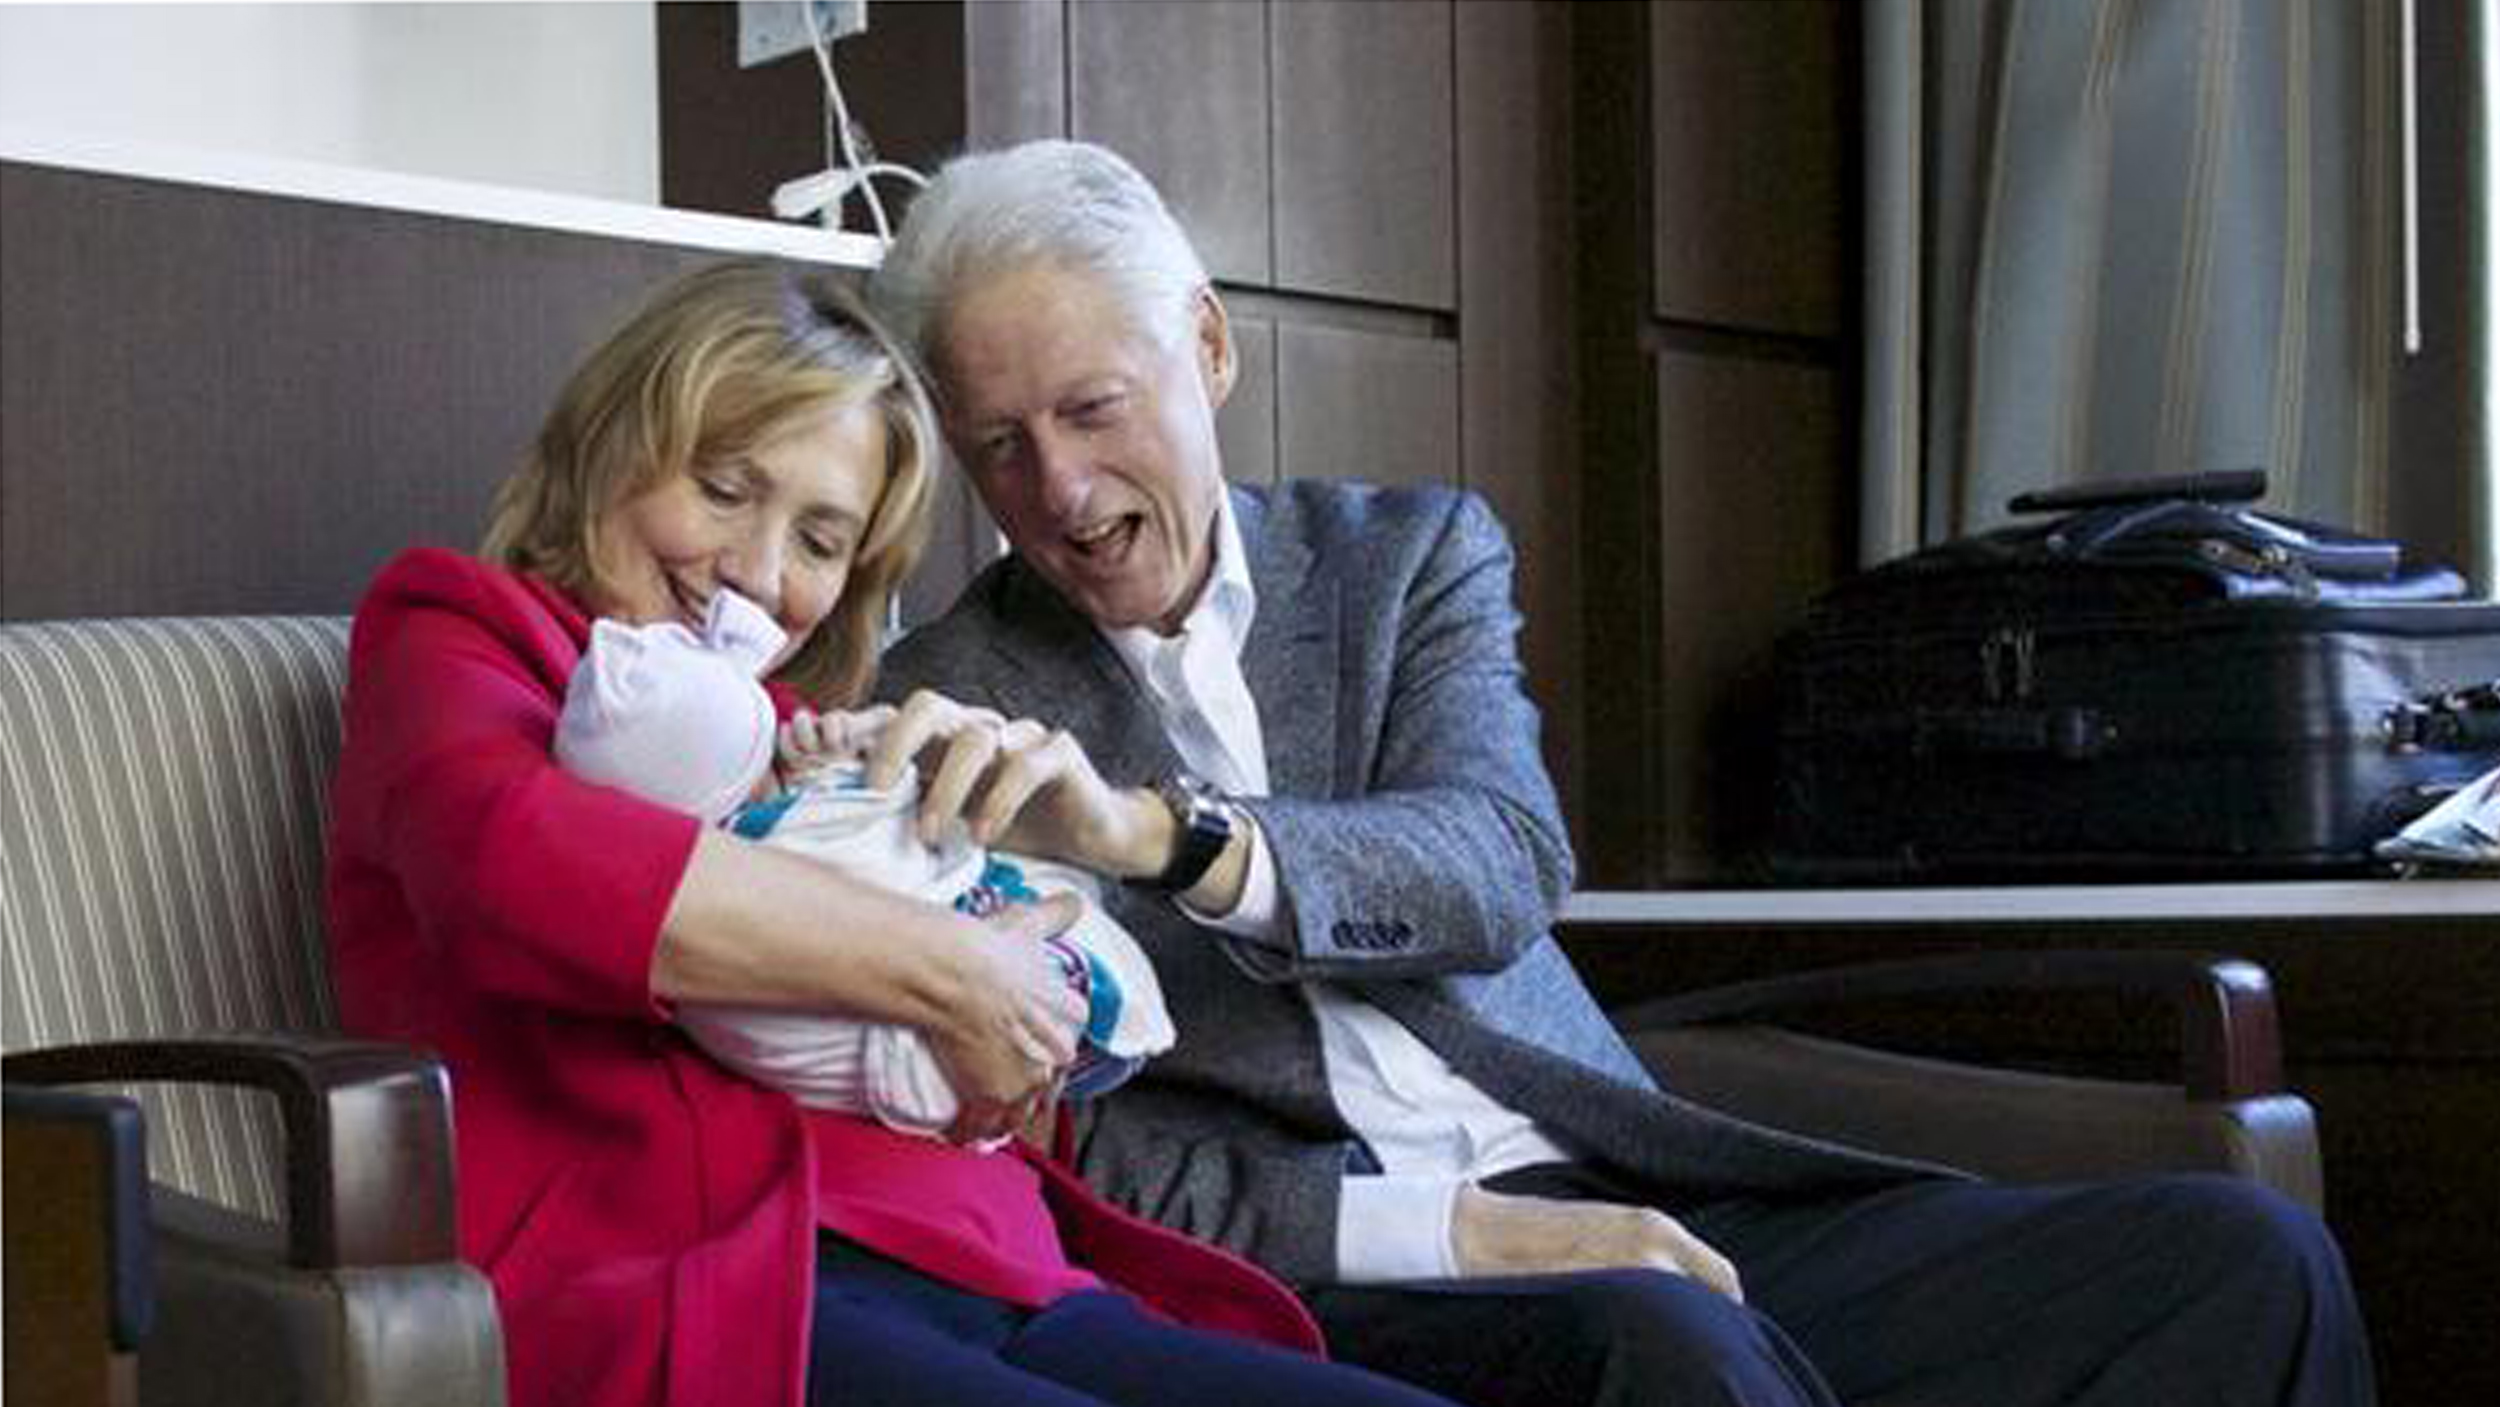 chelsea clinton gives birth to baby girl